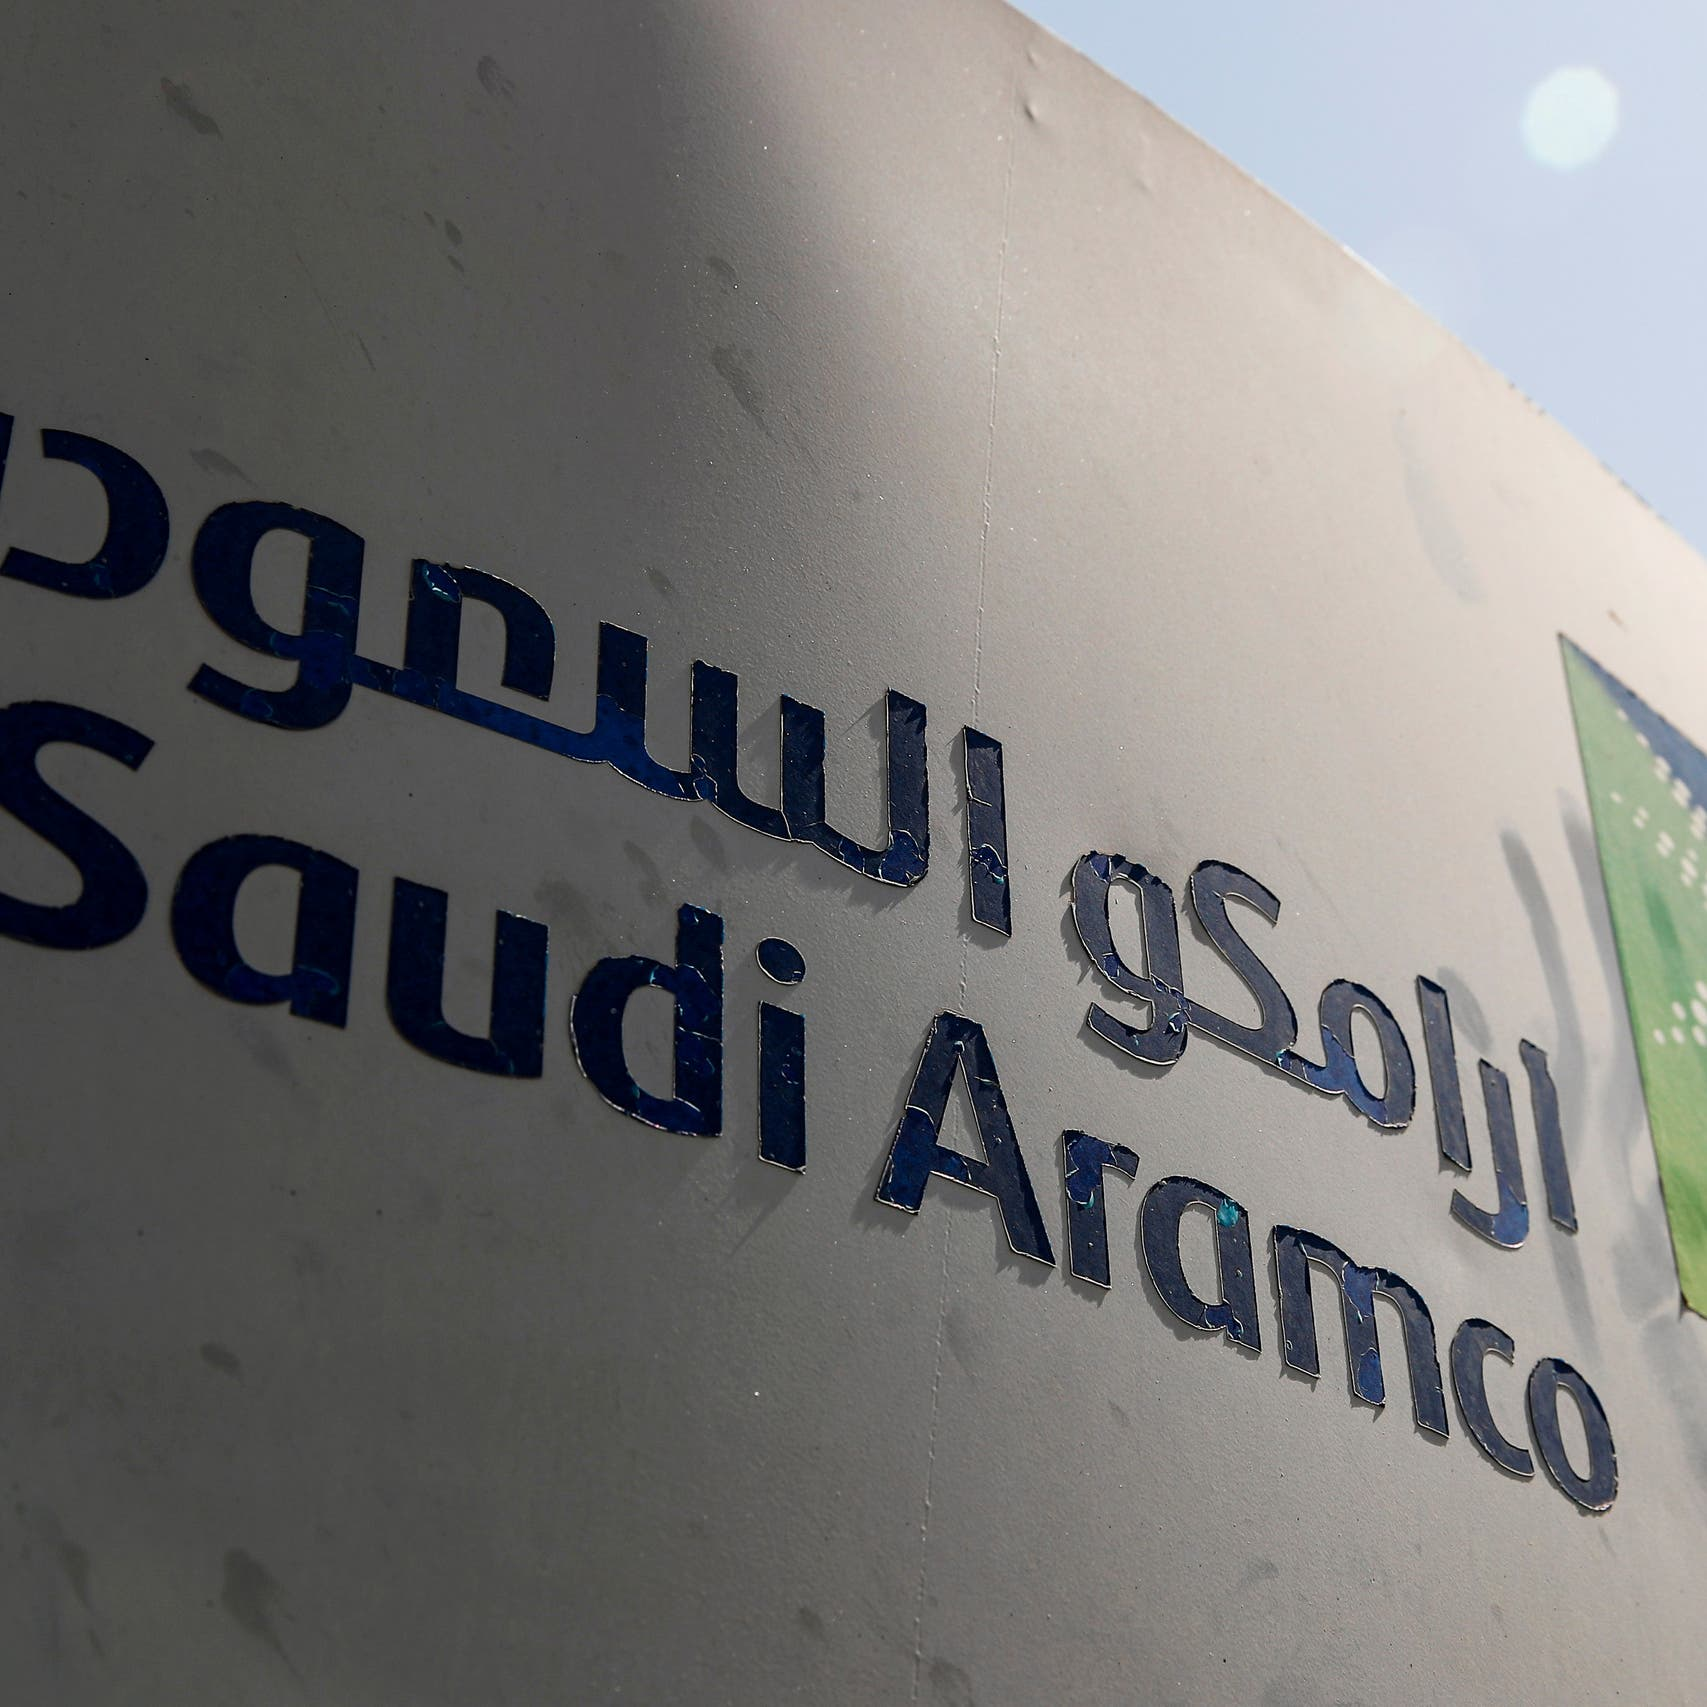 Major Chinese investors in talks to take Aramco stake: Reuters